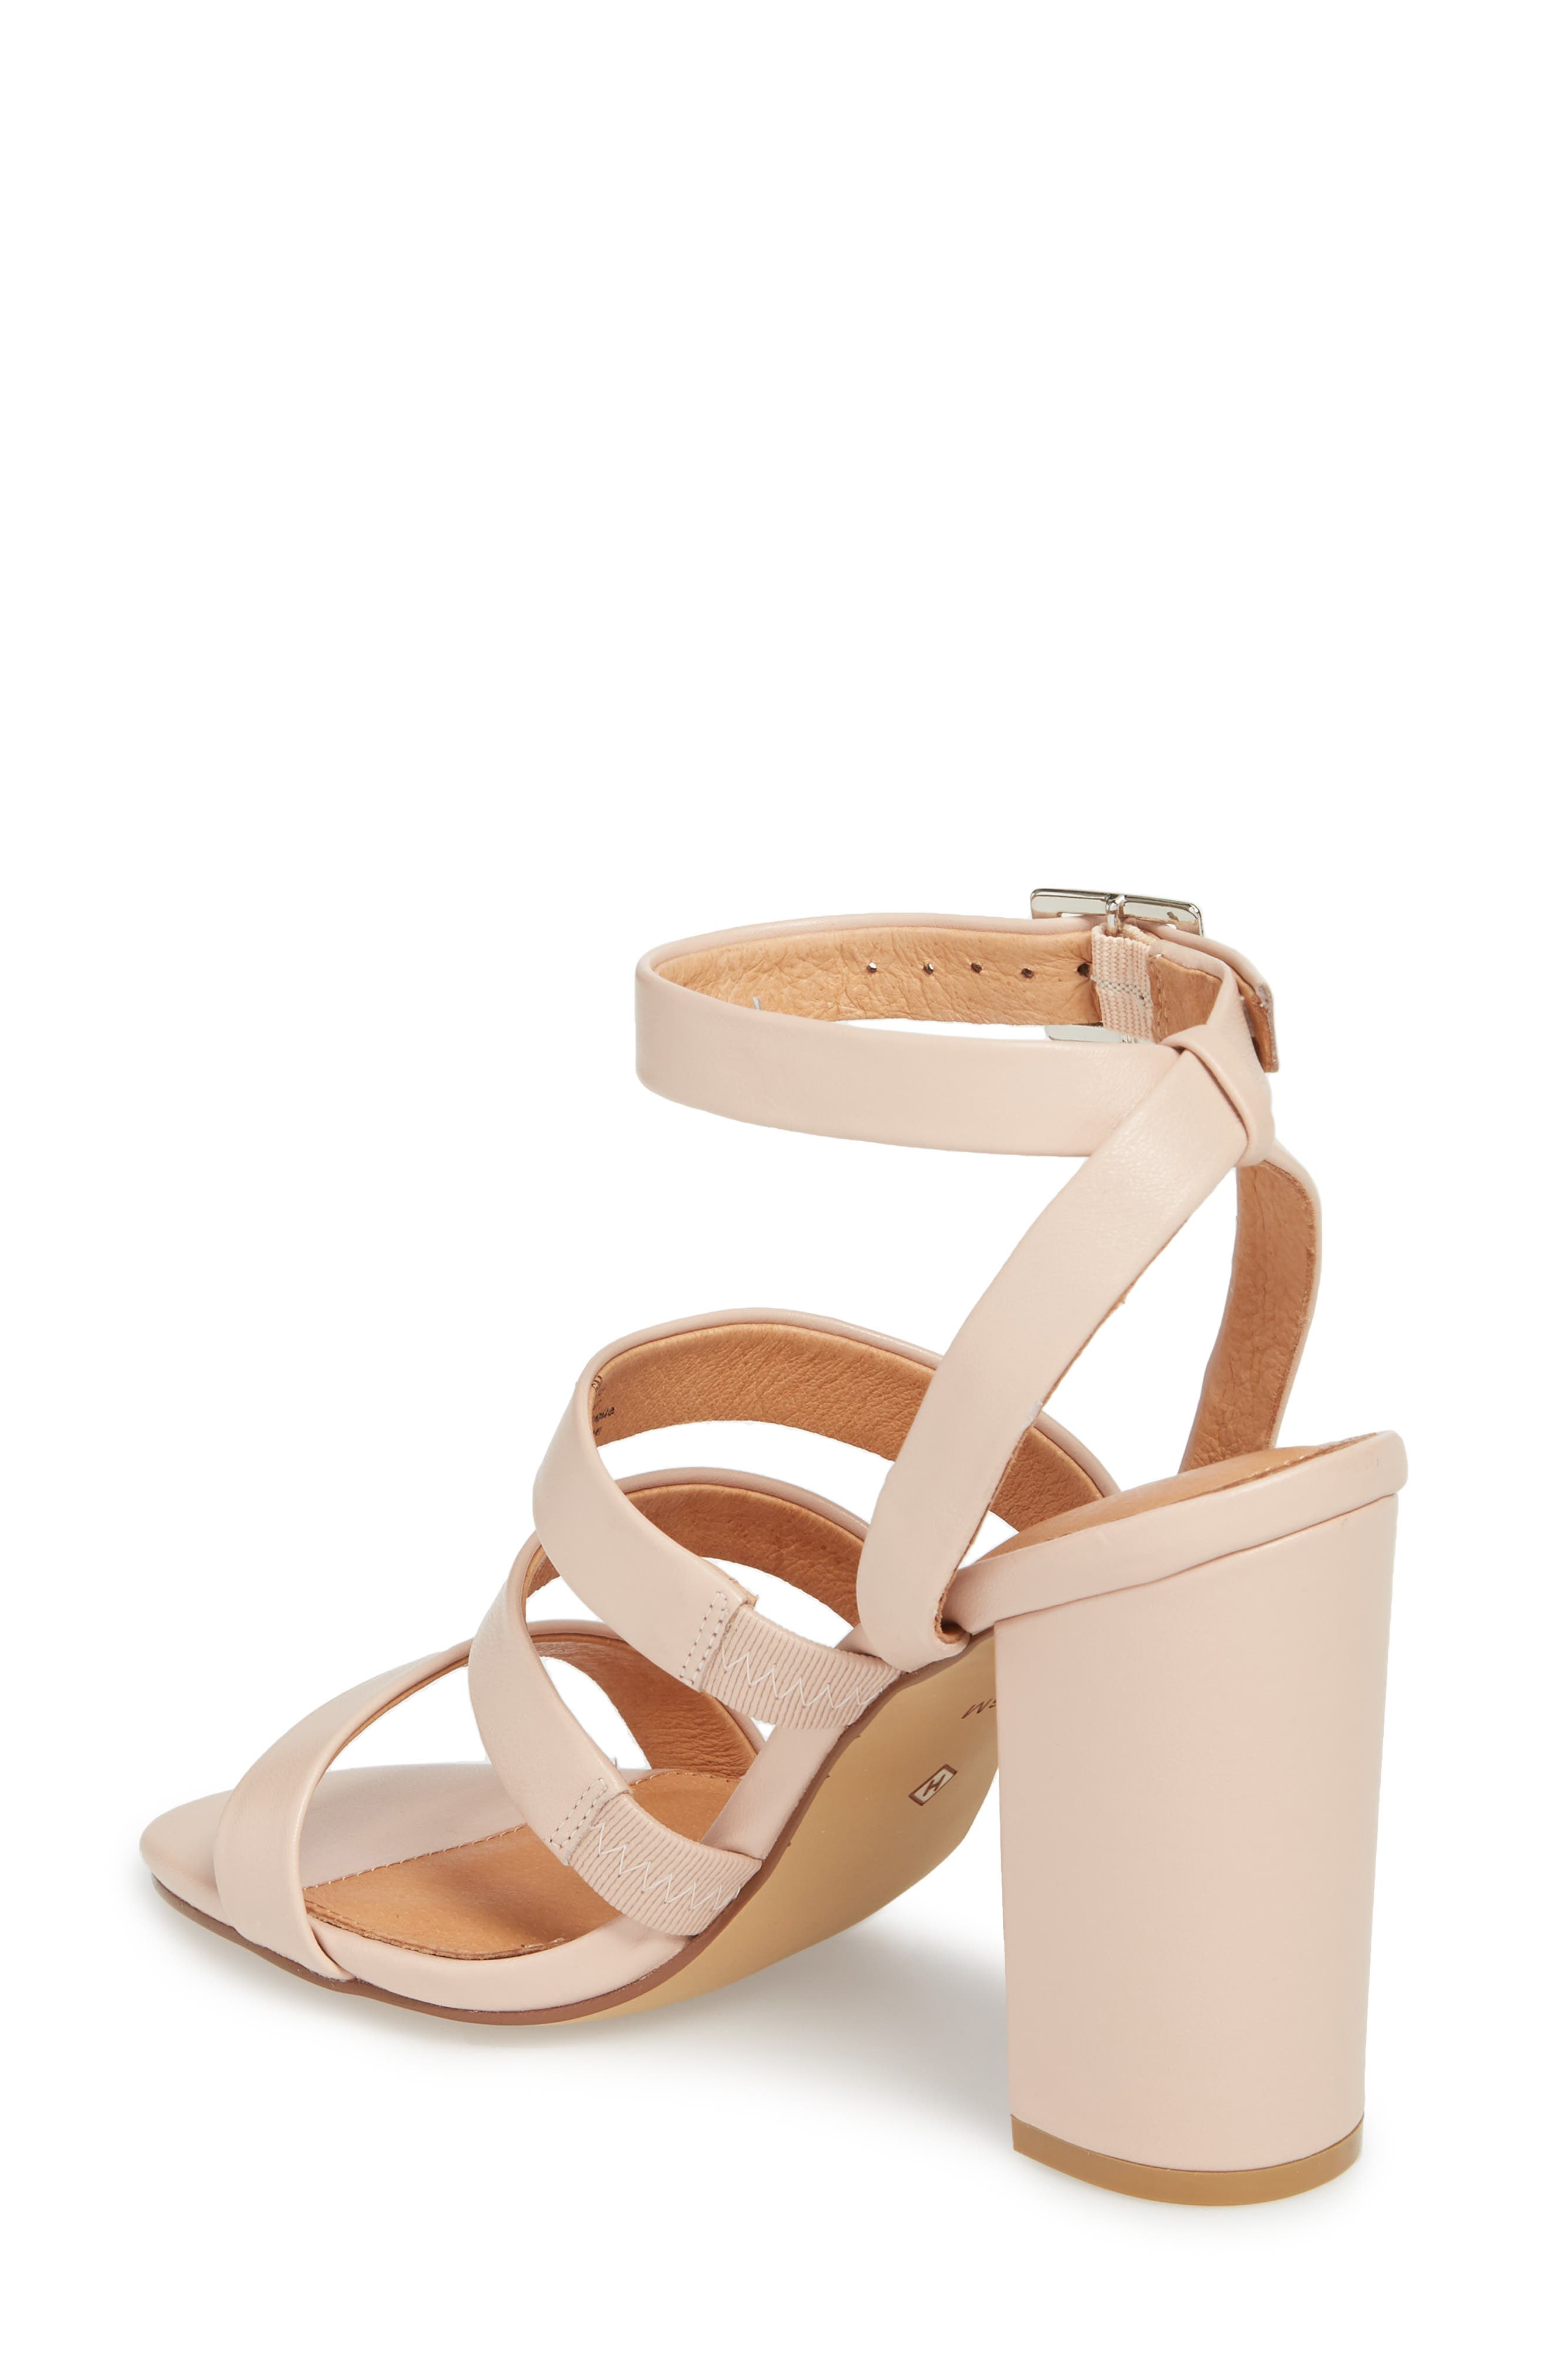 Rocco Sandal,                             Alternate thumbnail 2, color,                             BLUSH LEATHER